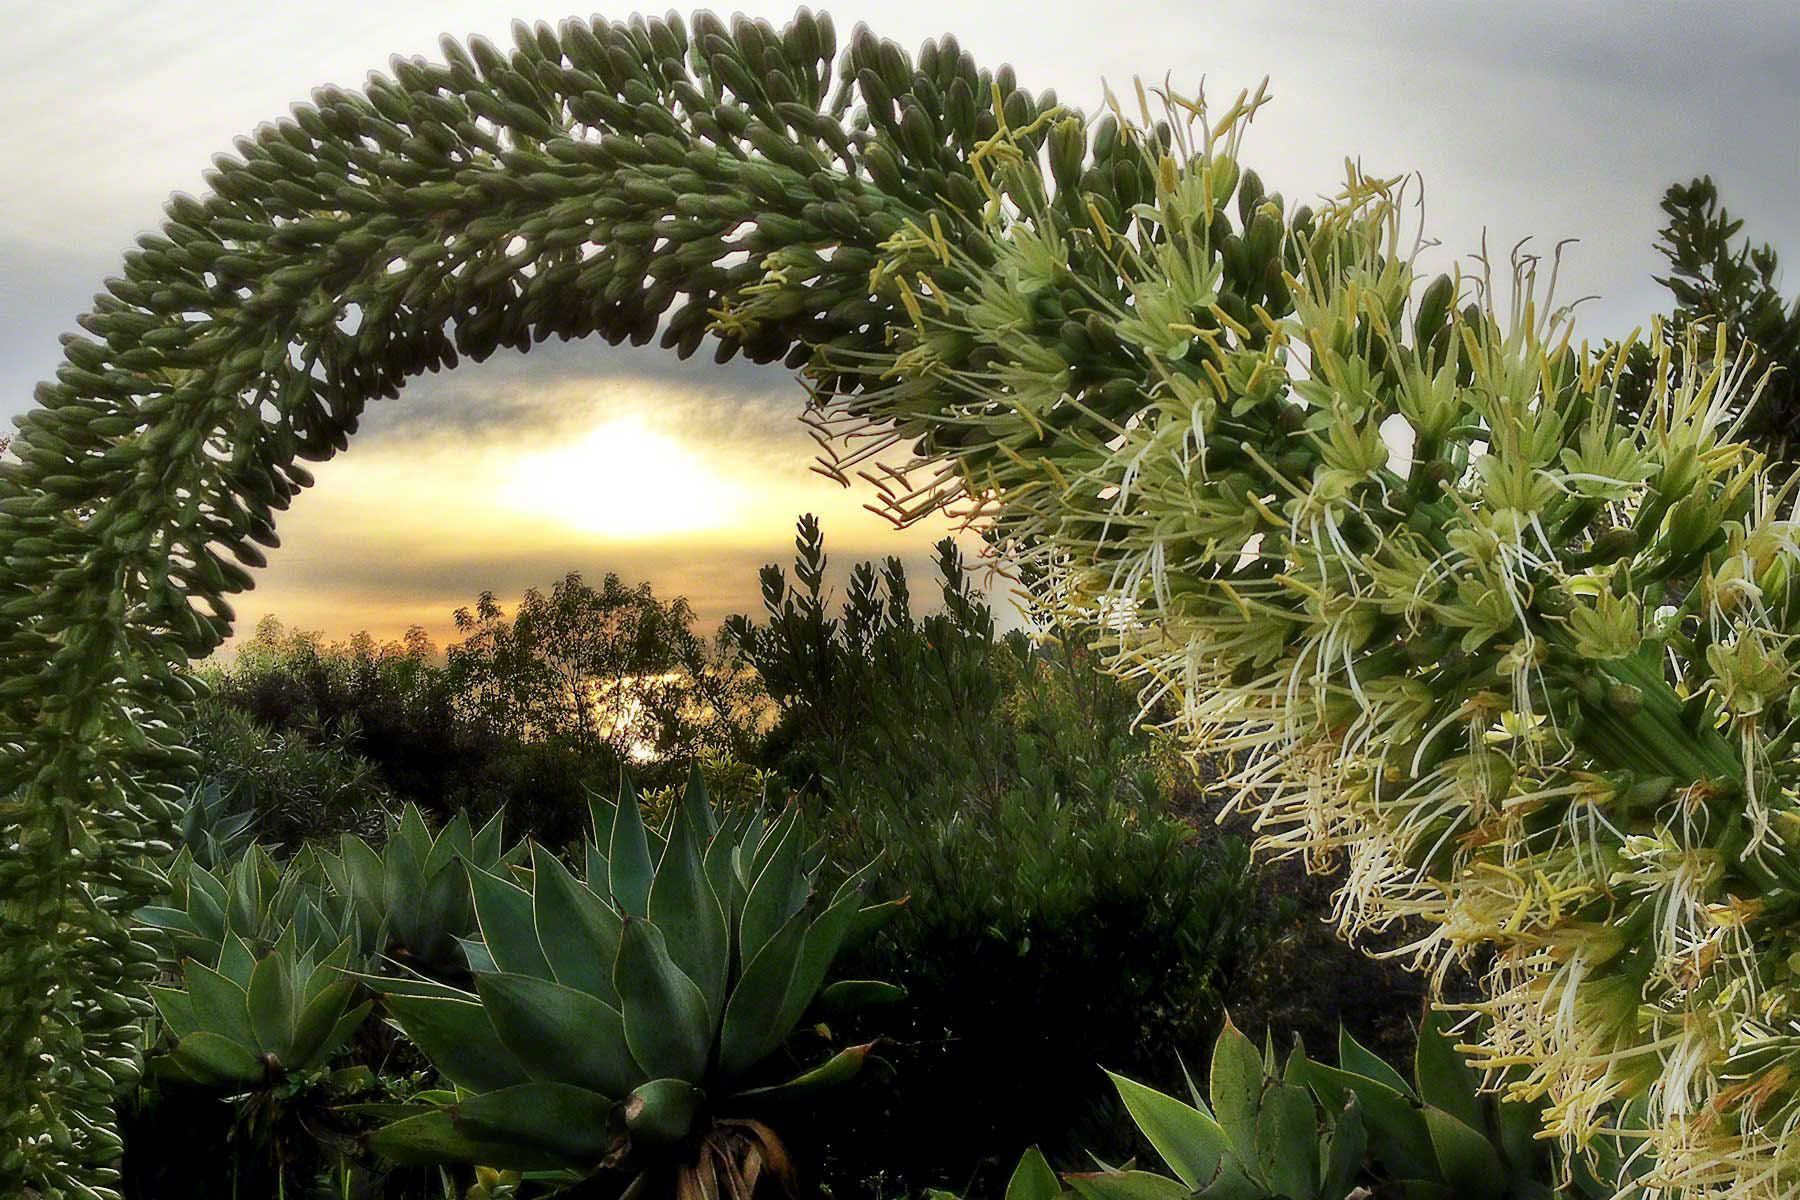 Foxtail Yucca at Sunset